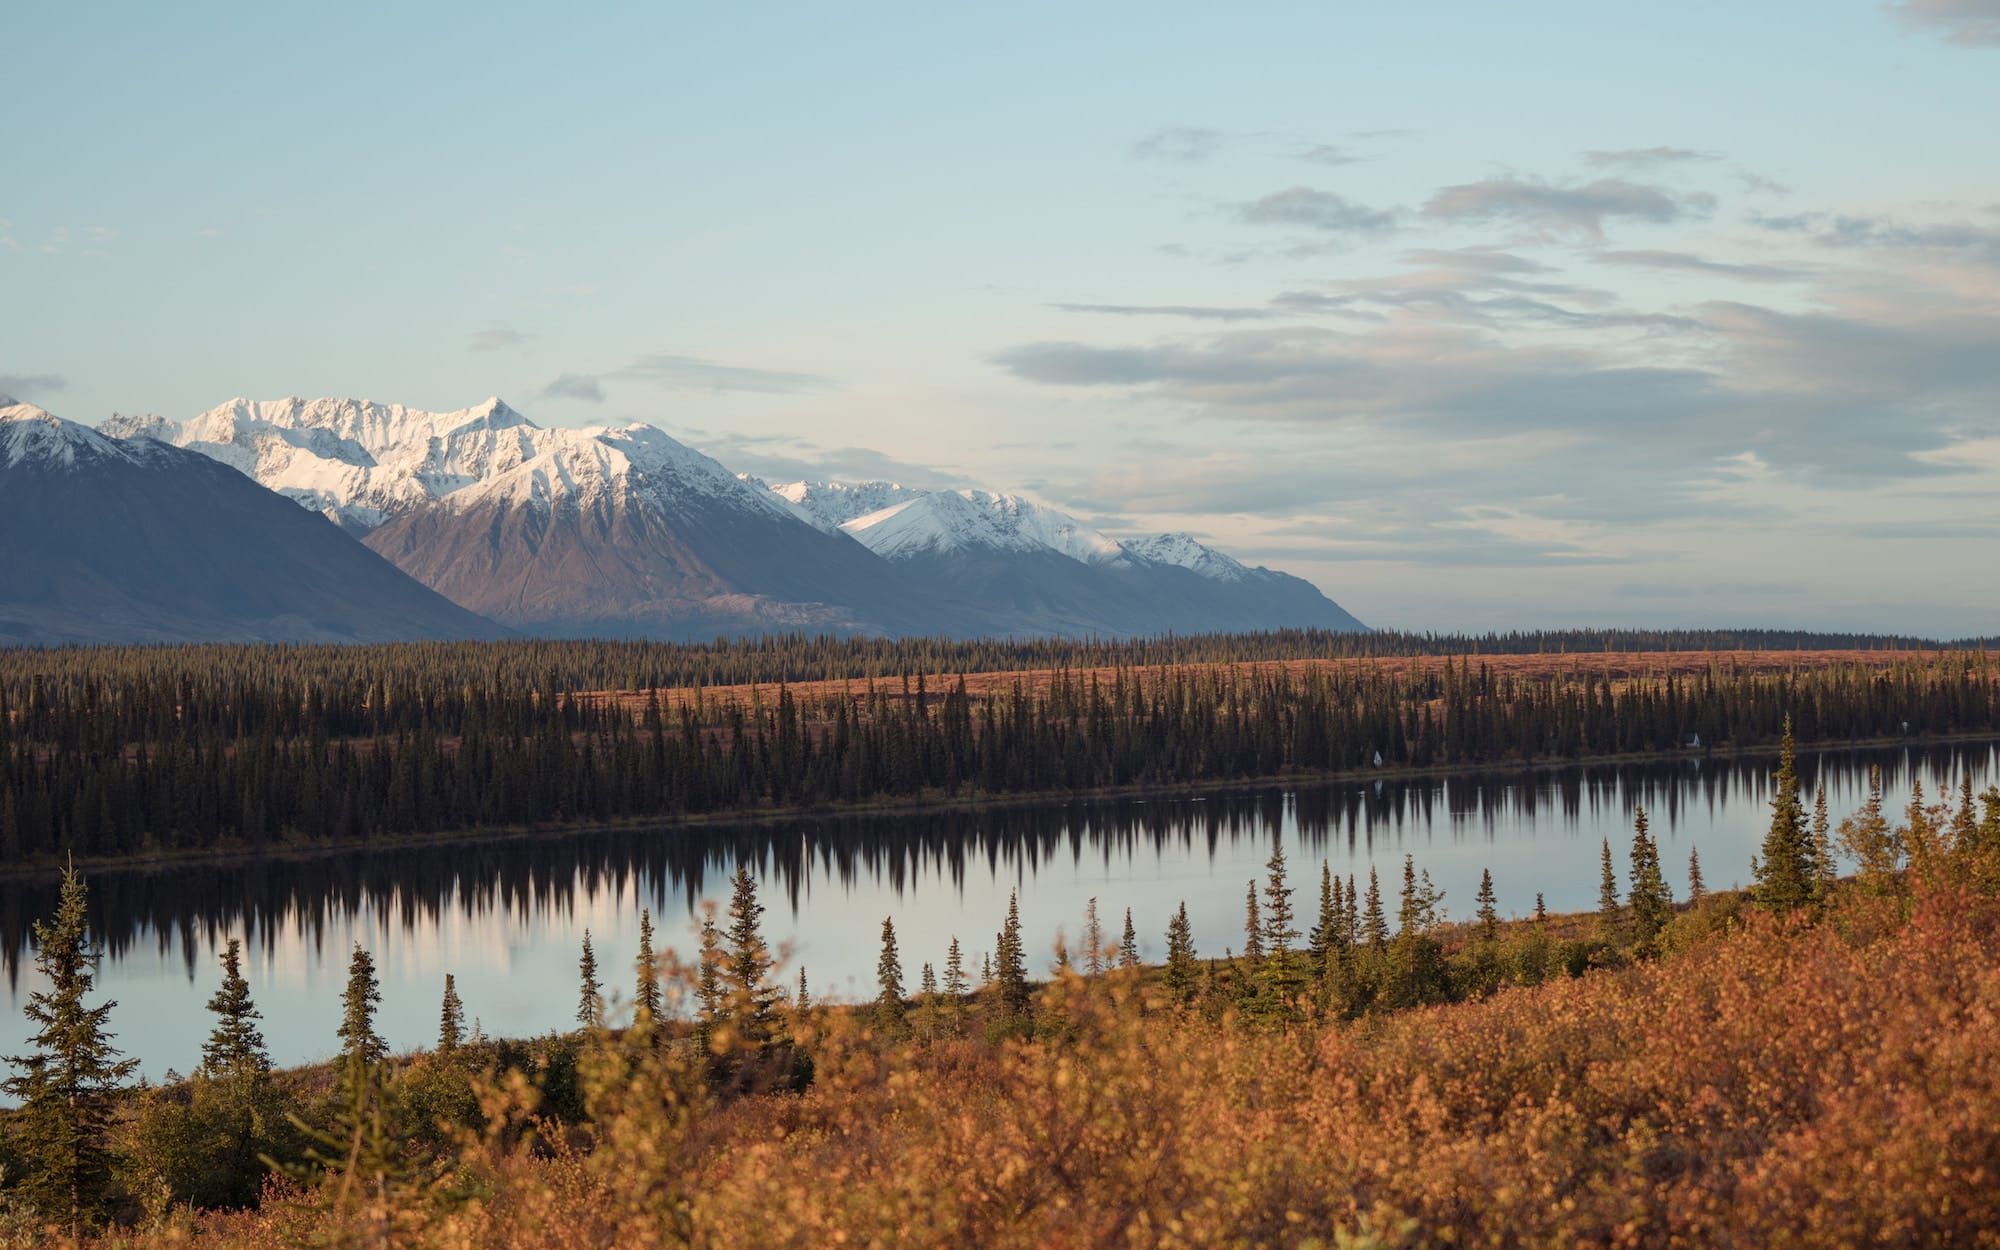 mountains in Alaska, nature picture, luxury Alaska vacation, offered by Southern Travel Agency Augusta GA, local travel agency near me